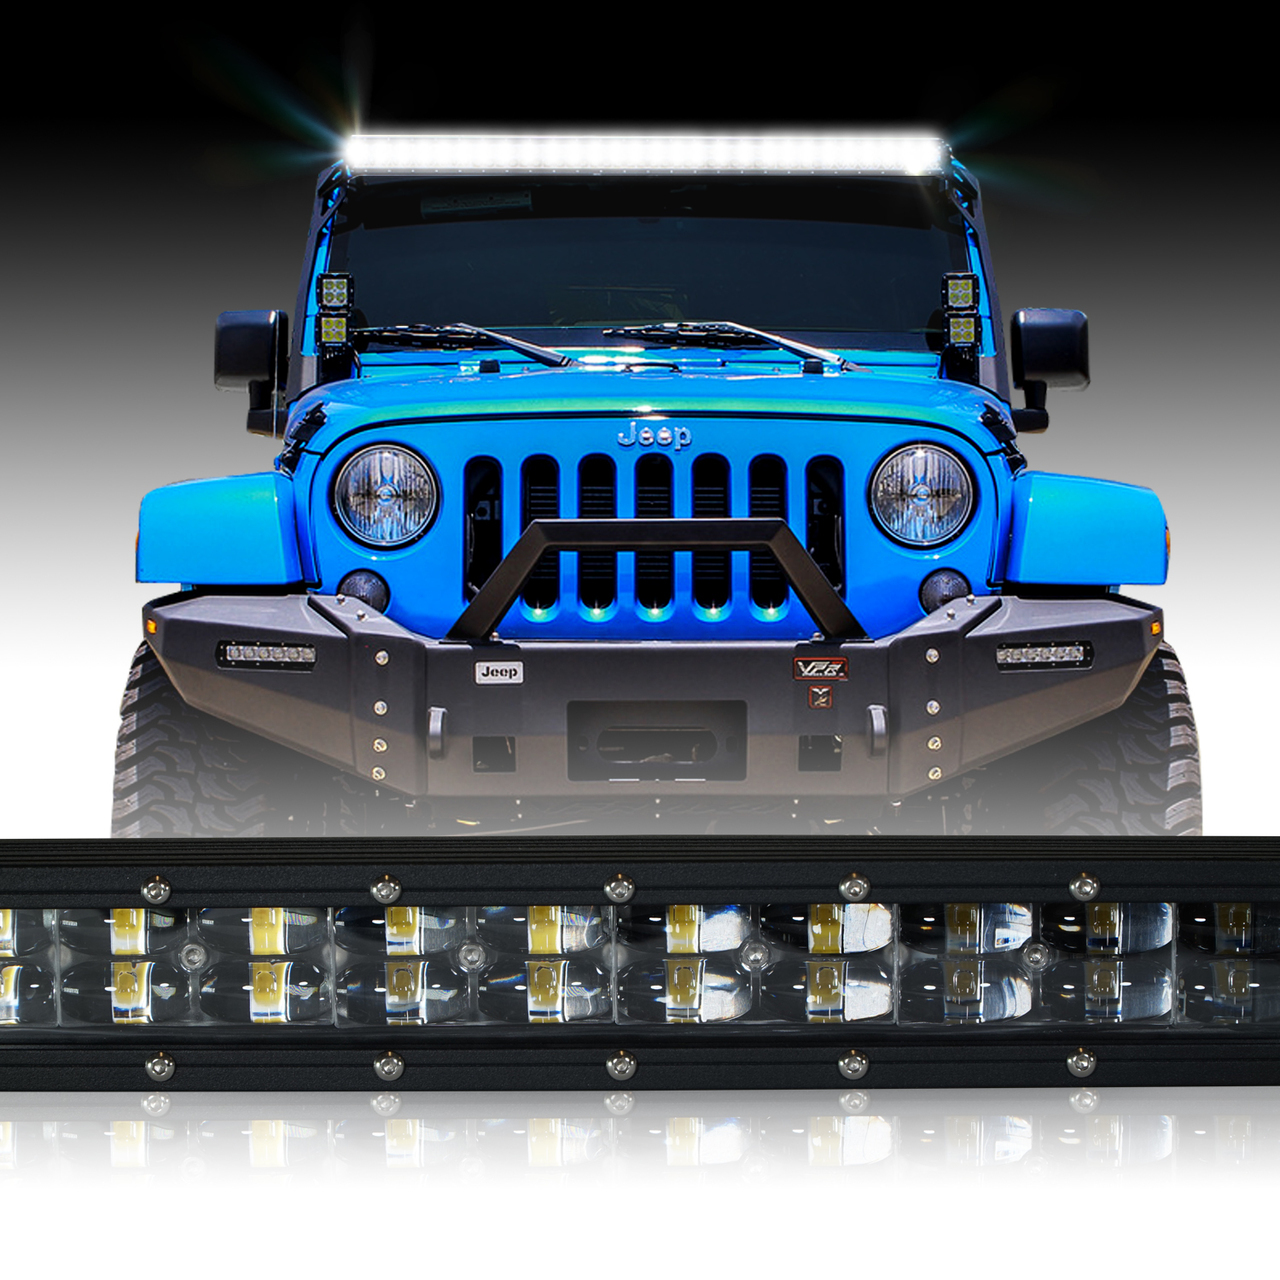 Awesome Led Light Bar 288W 50 Inches Bracket Wiring Harness Kit For Wrangler Wiring 101 Omenaxxcnl